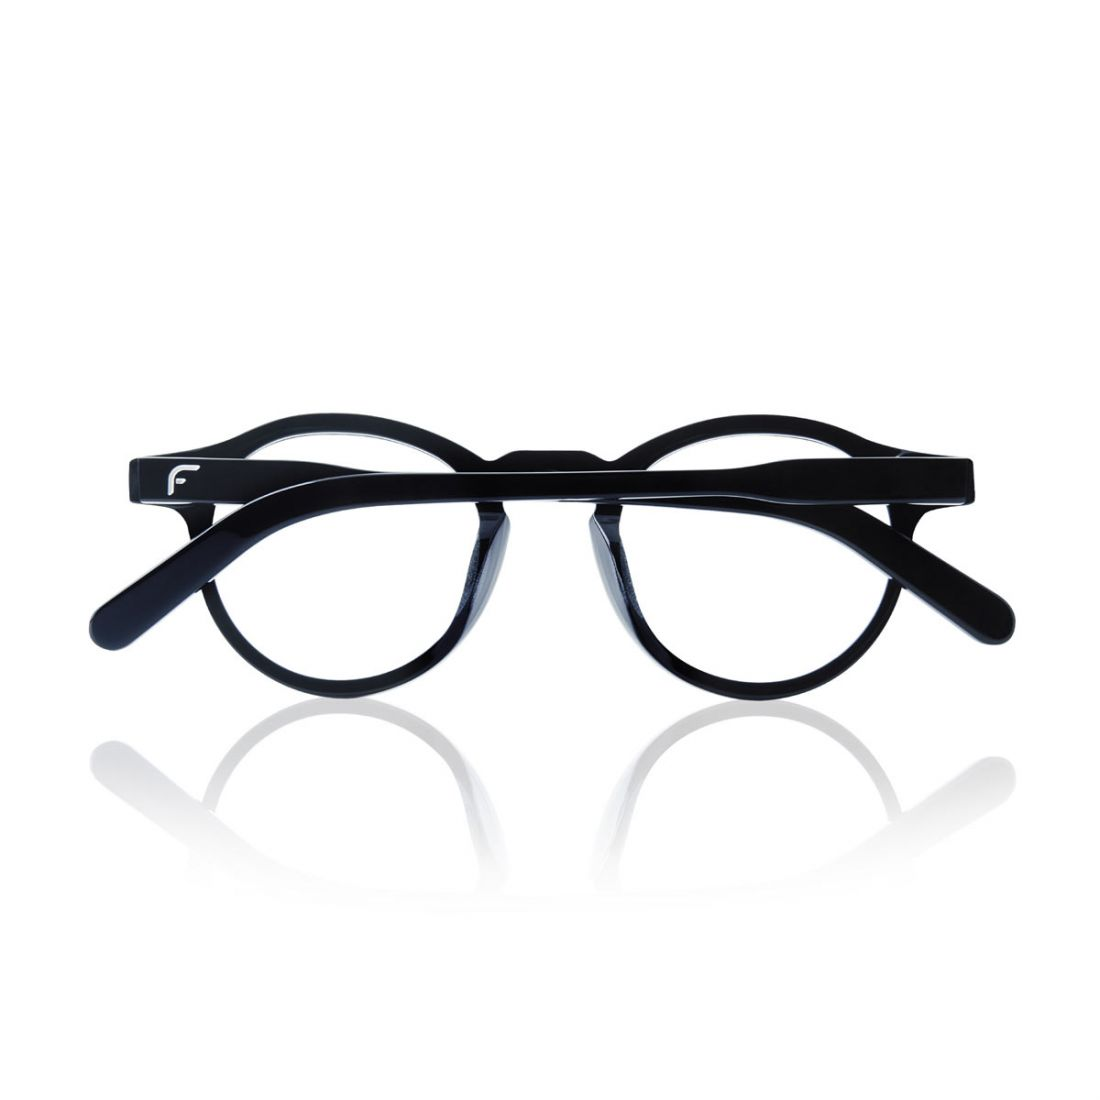 Acetate Frame Machine Tumbling Barrel Machine For Glasses Frames Eyeglass Machine Mail: Handmade Finished Acetate Glasses Frame For Women Men